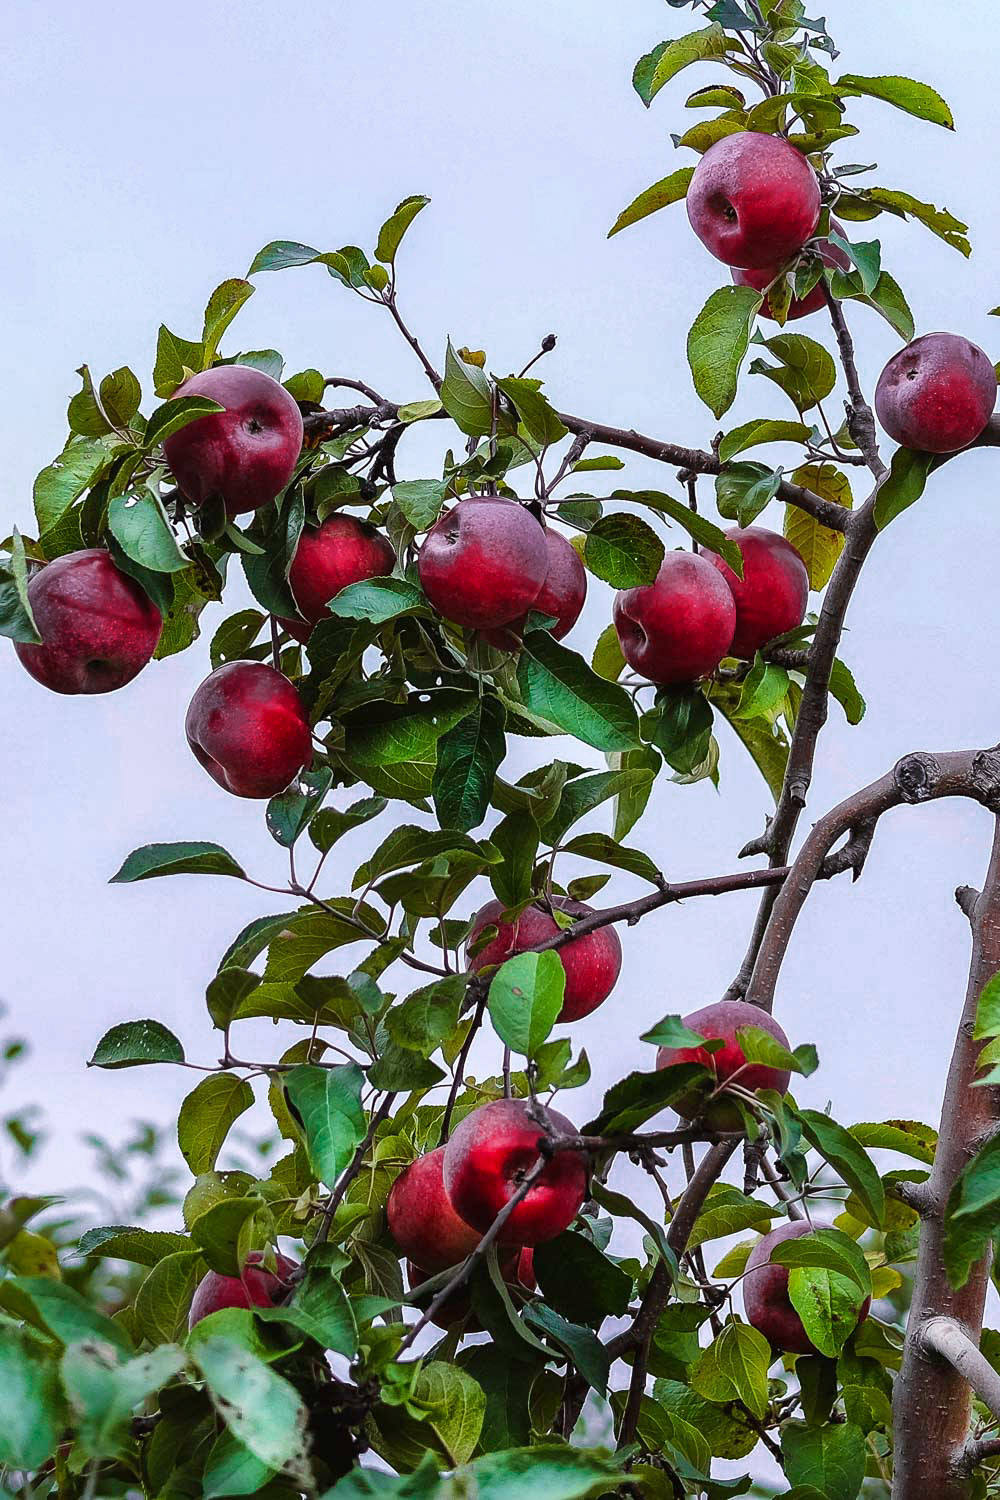 Apples on a tree at Chudleigh's Apple Farm